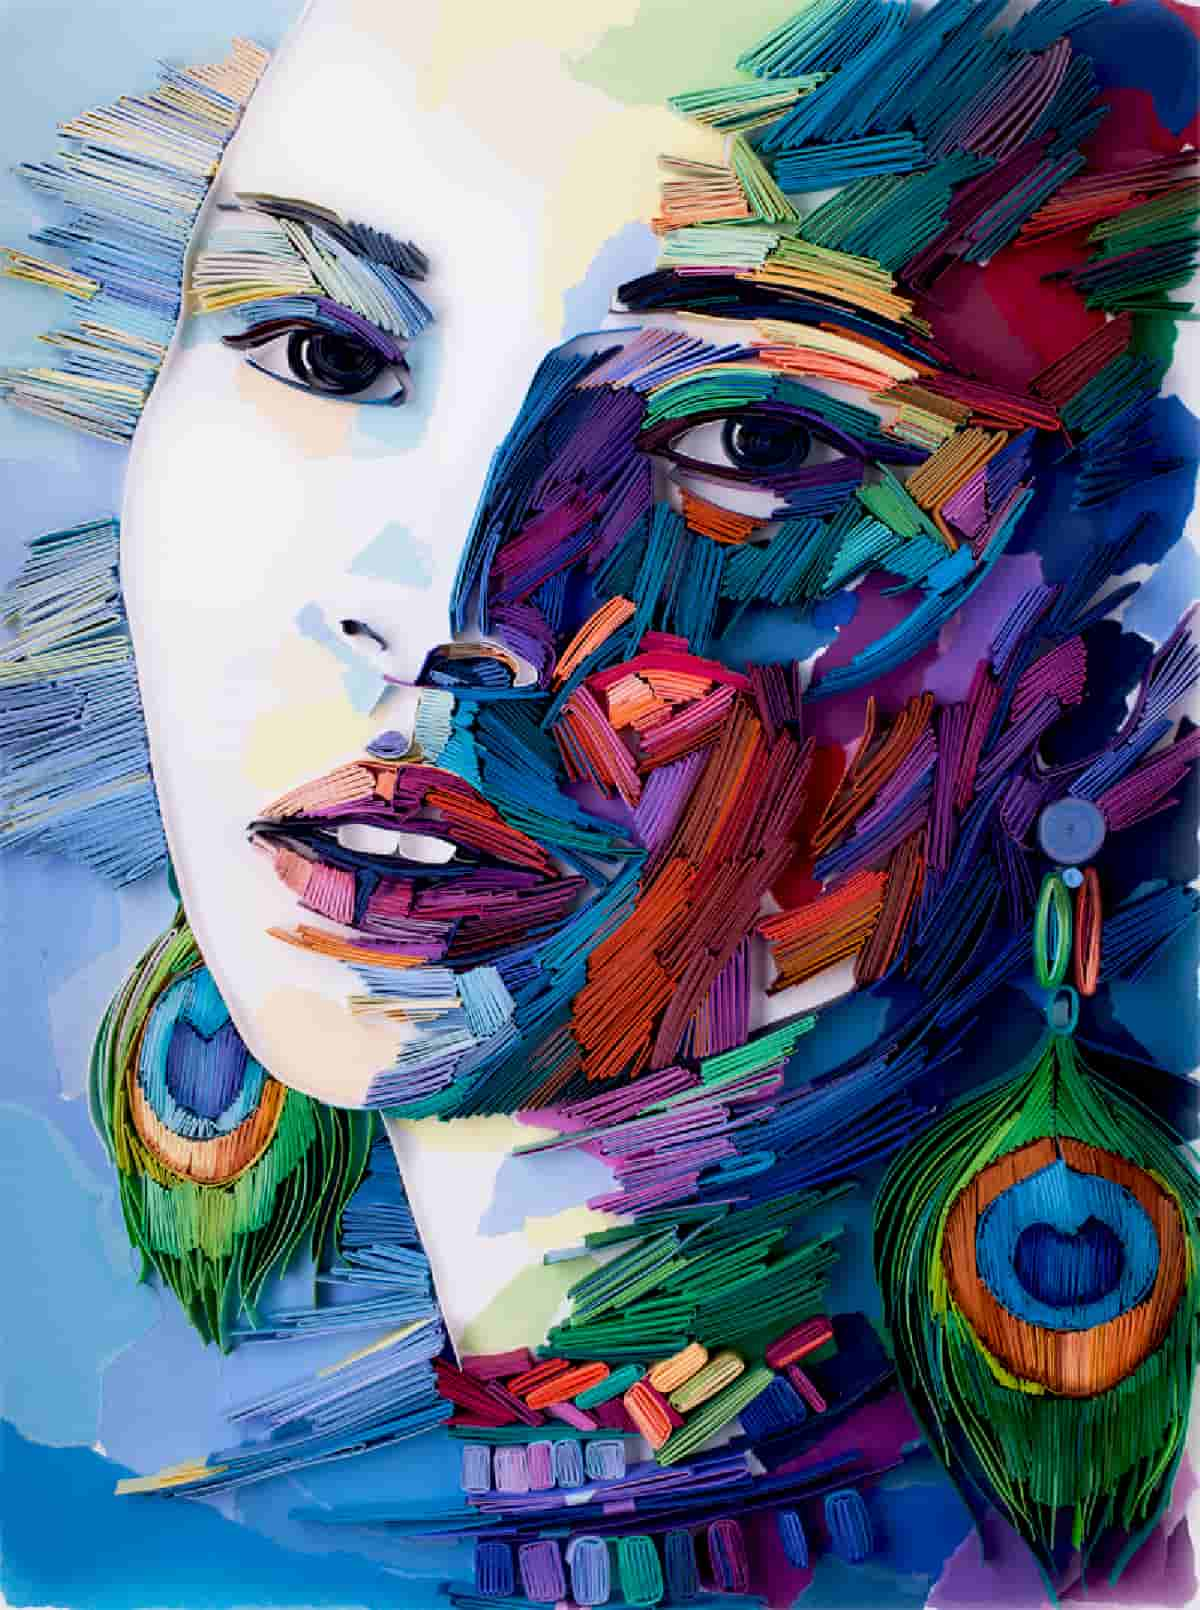 Dark Backgrounds Dramatize Colorful Portraits of Quilled Paper